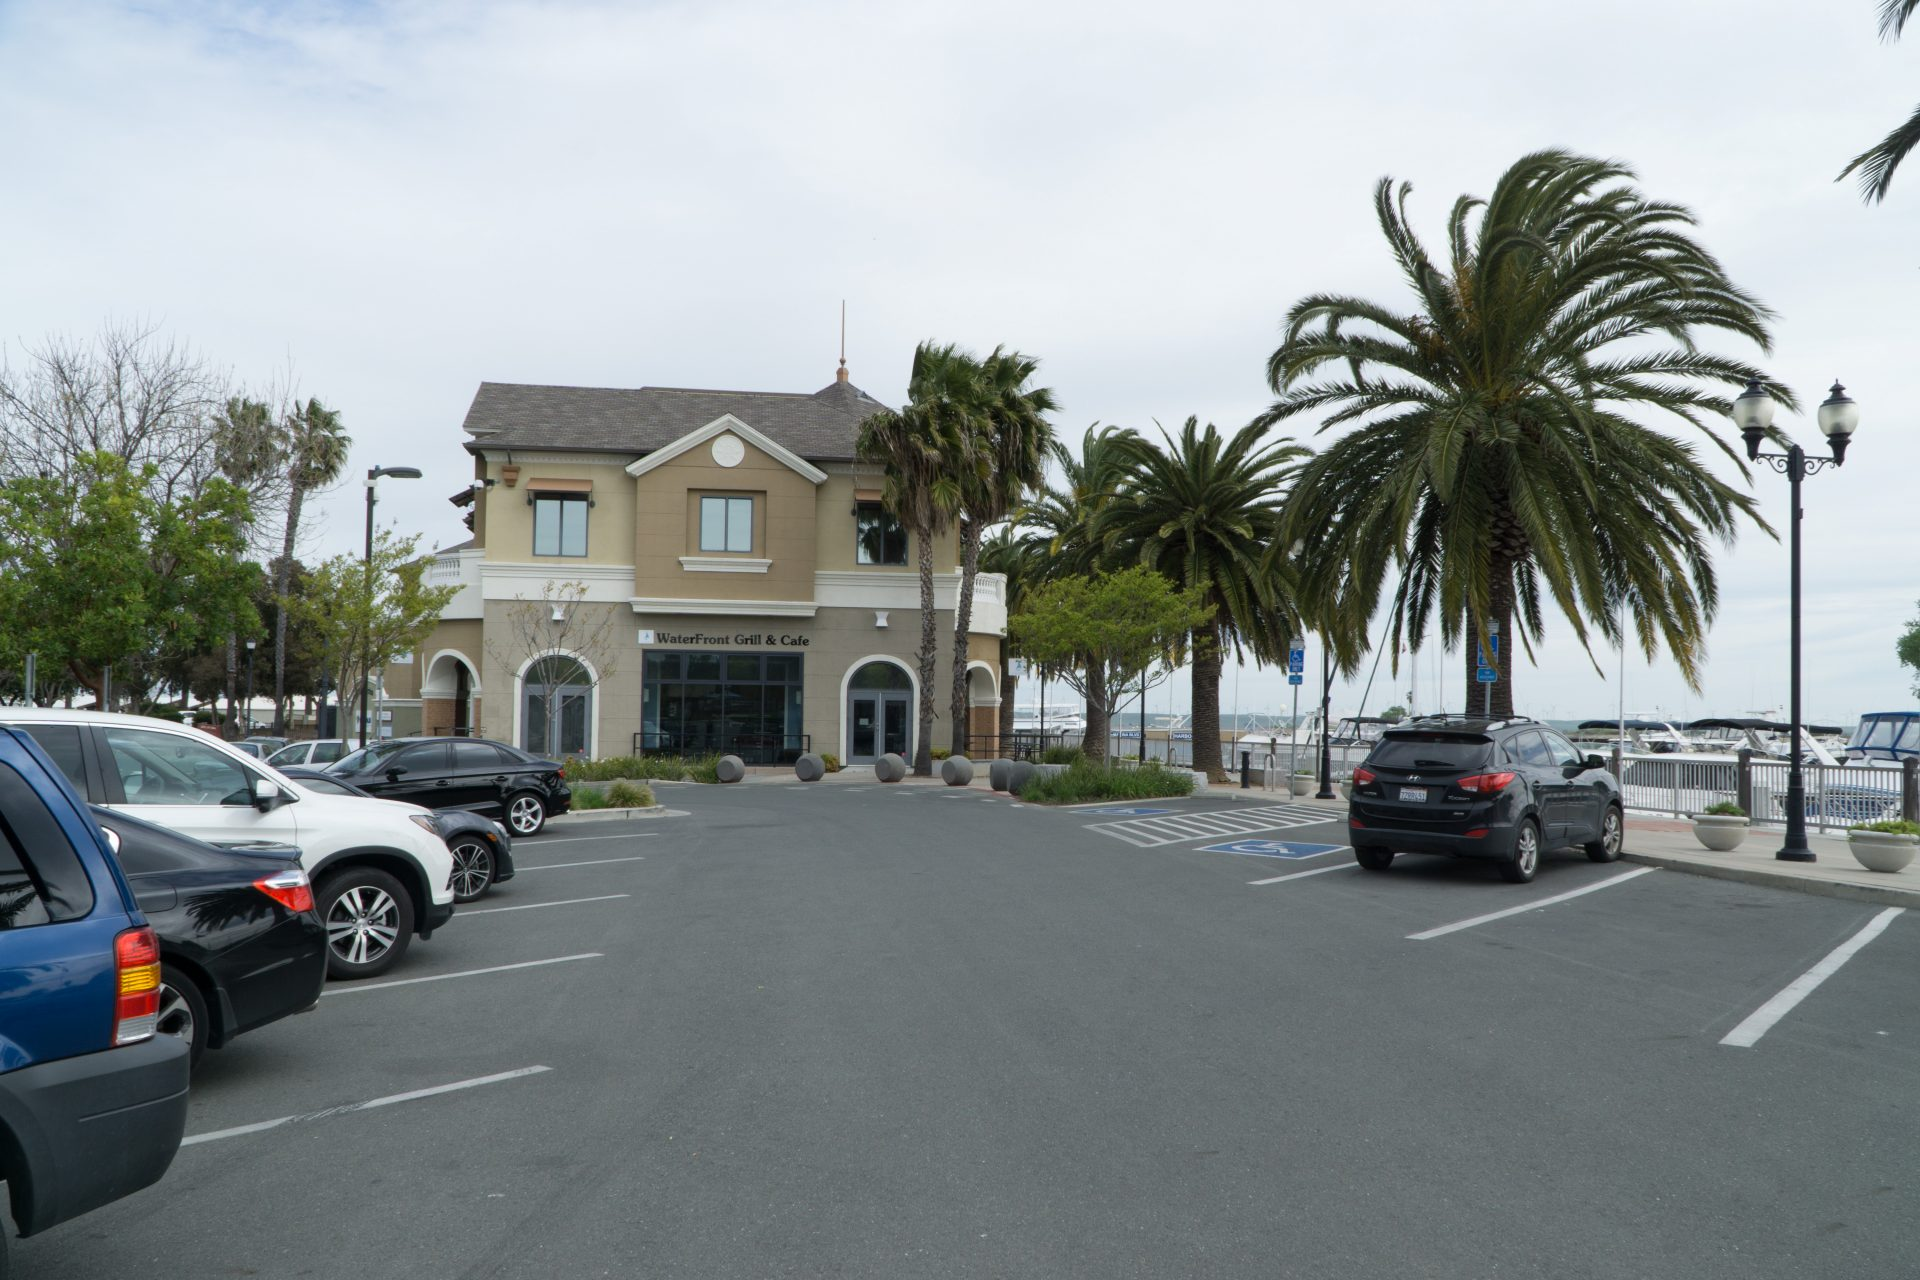 parking lot and palm trees